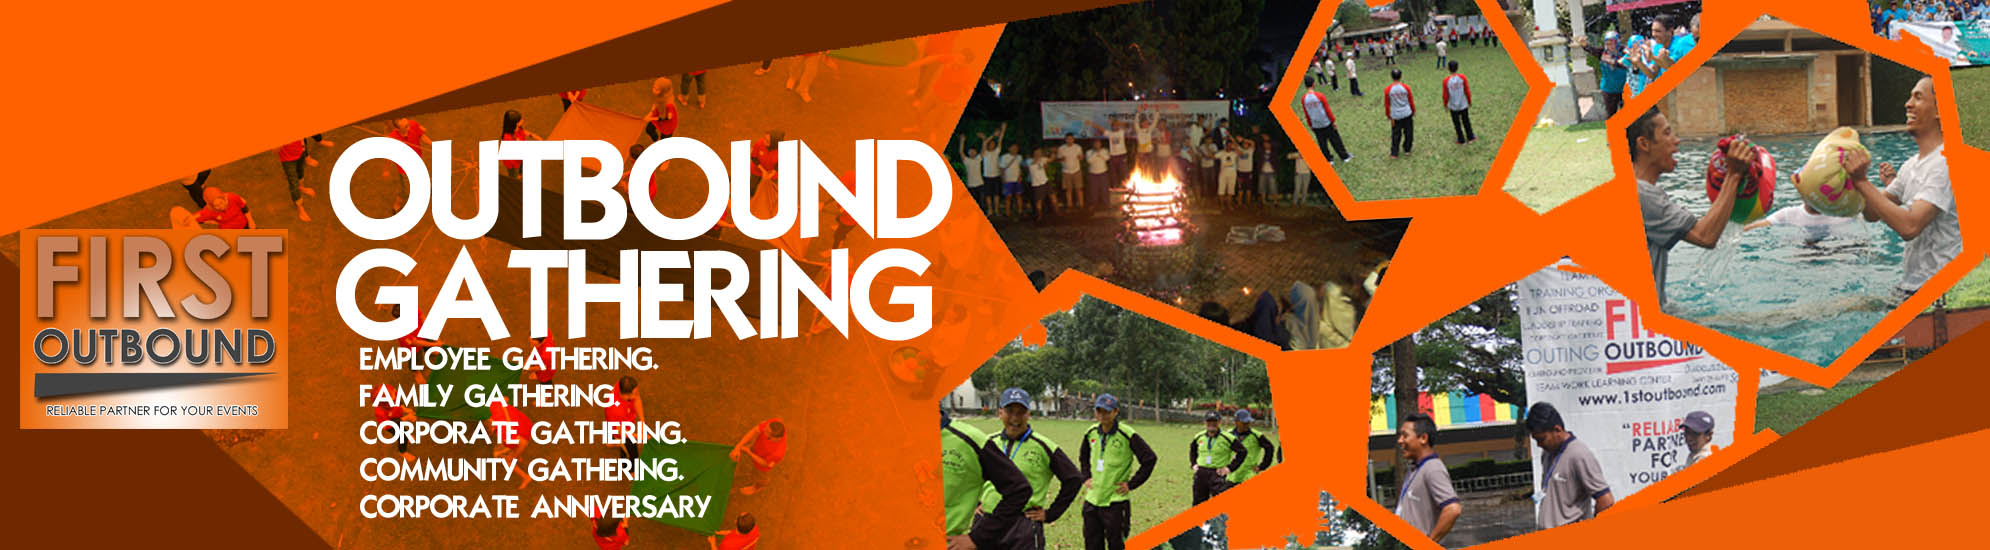 <h1>Outbound Gathering & Meeting</h1>